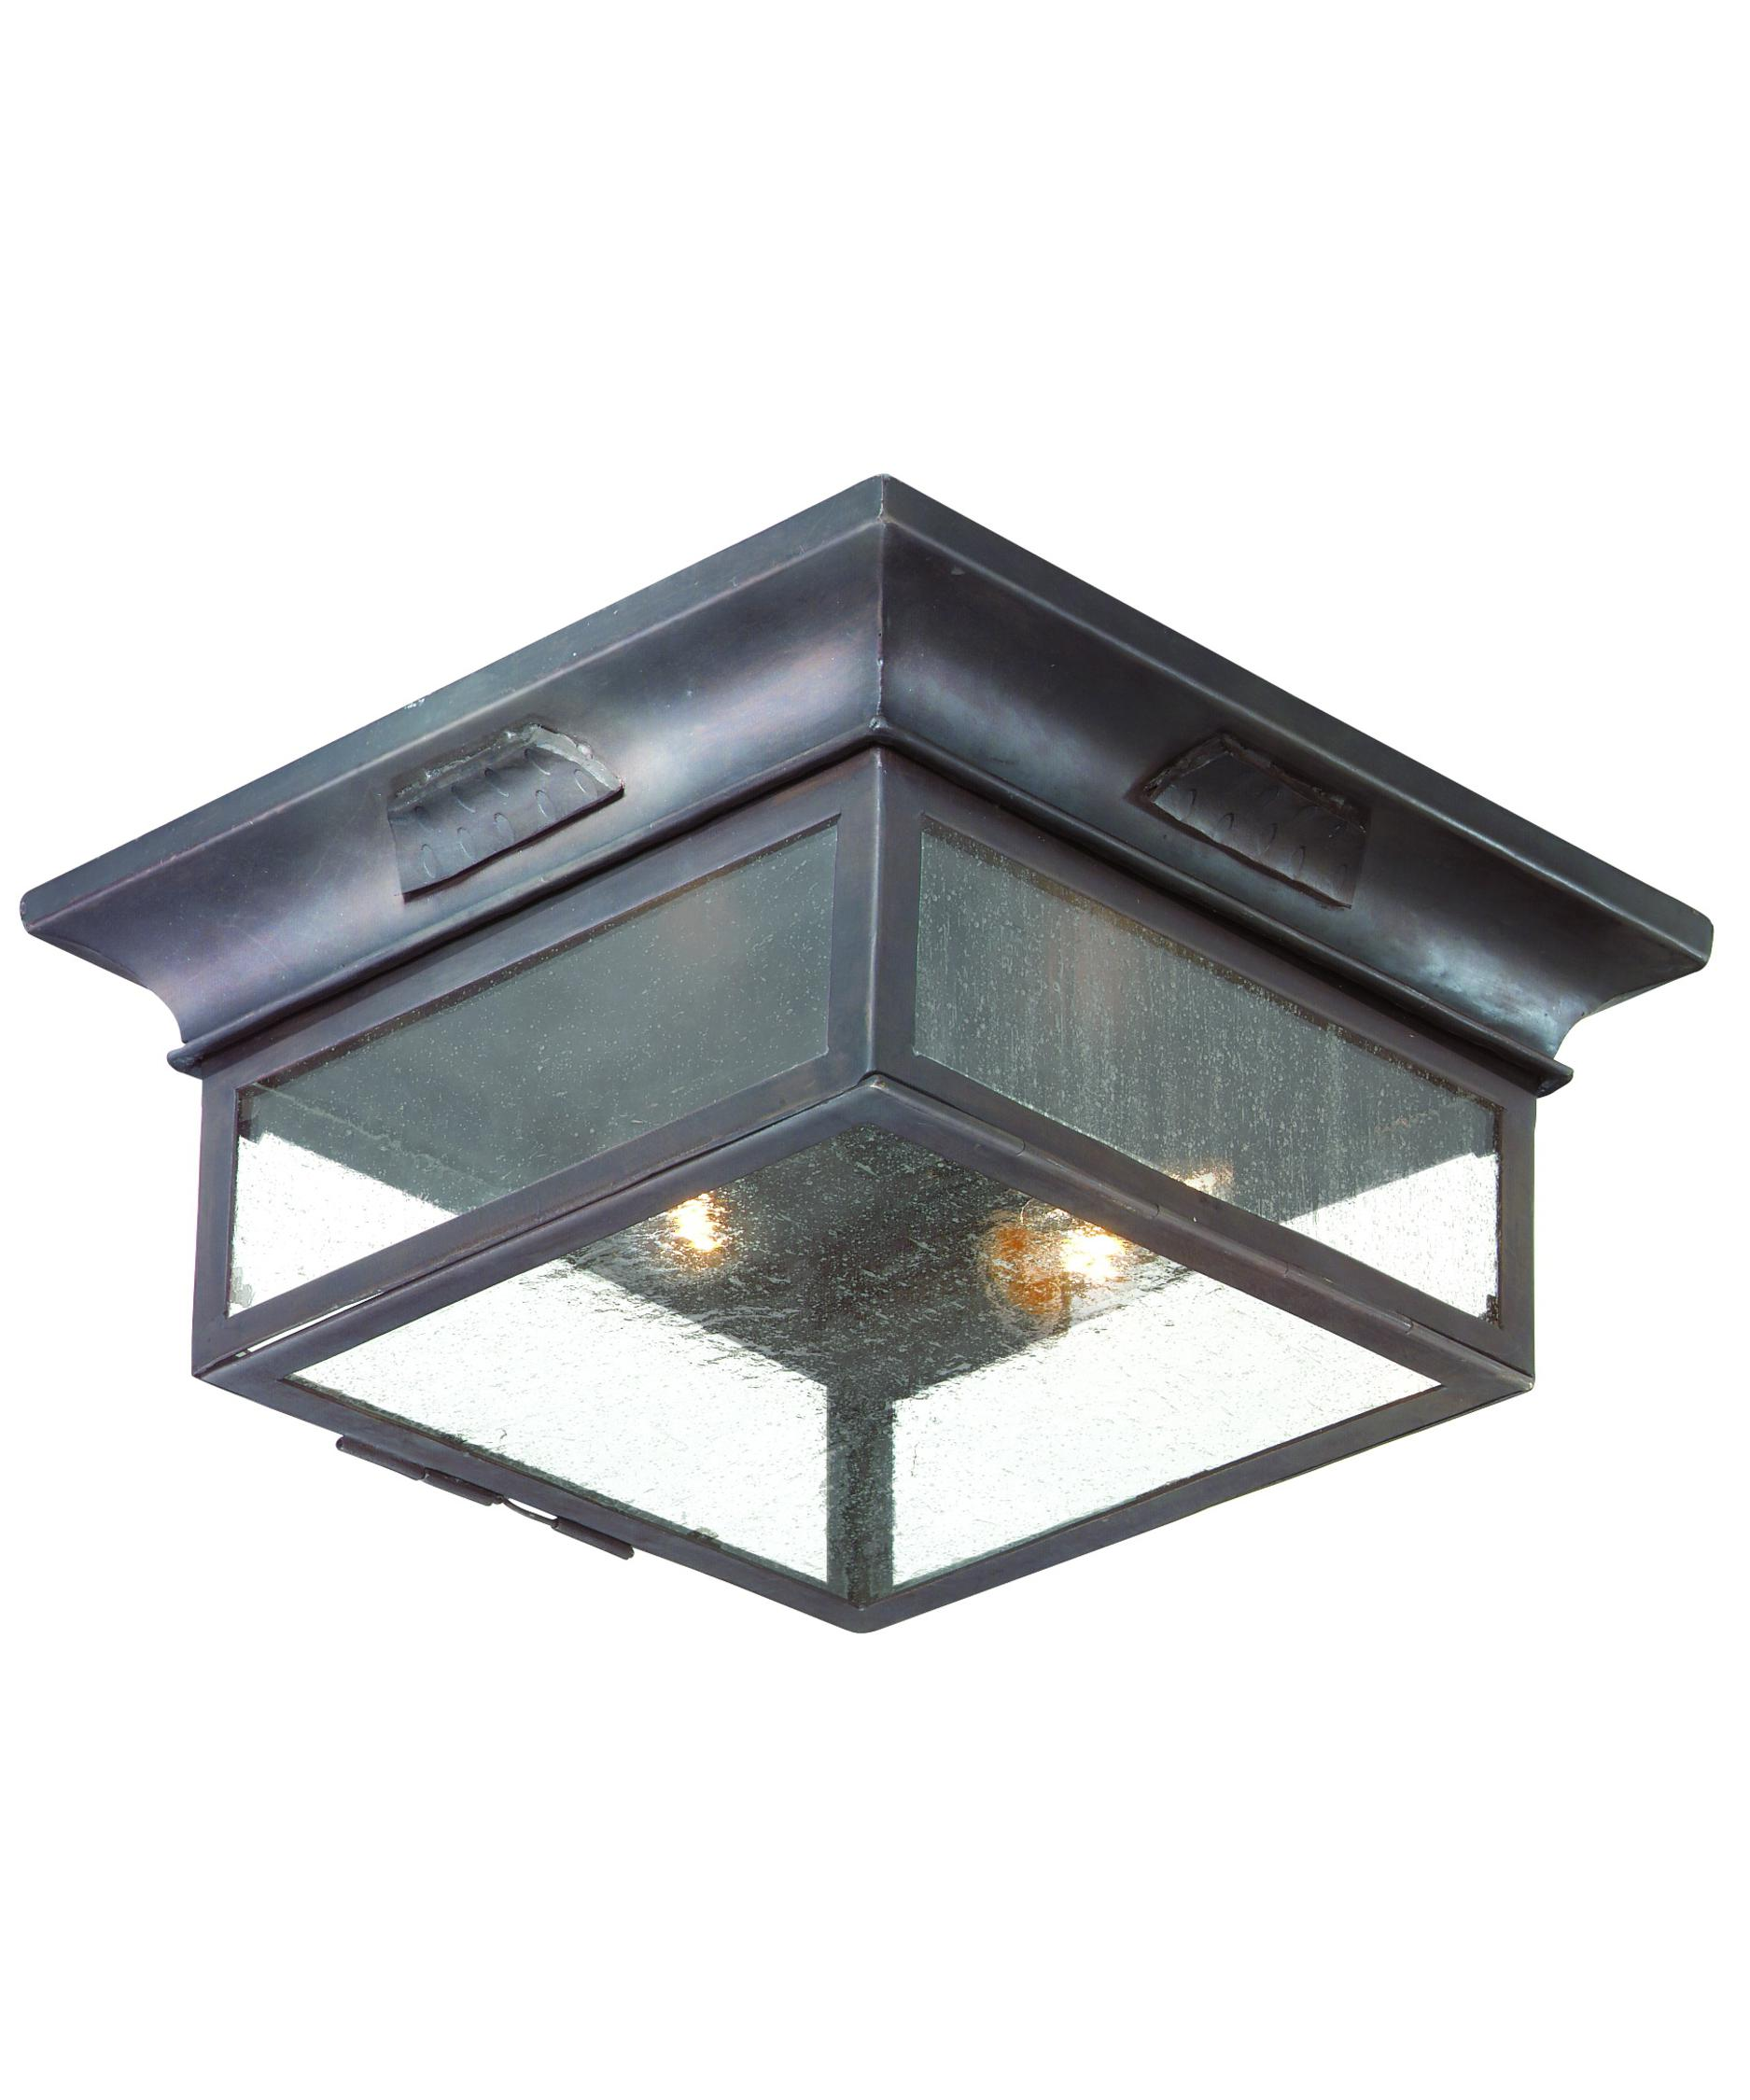 Flush mount outdoor lighting - Shown In Old Bronze Finish And Clear Seeded Glass